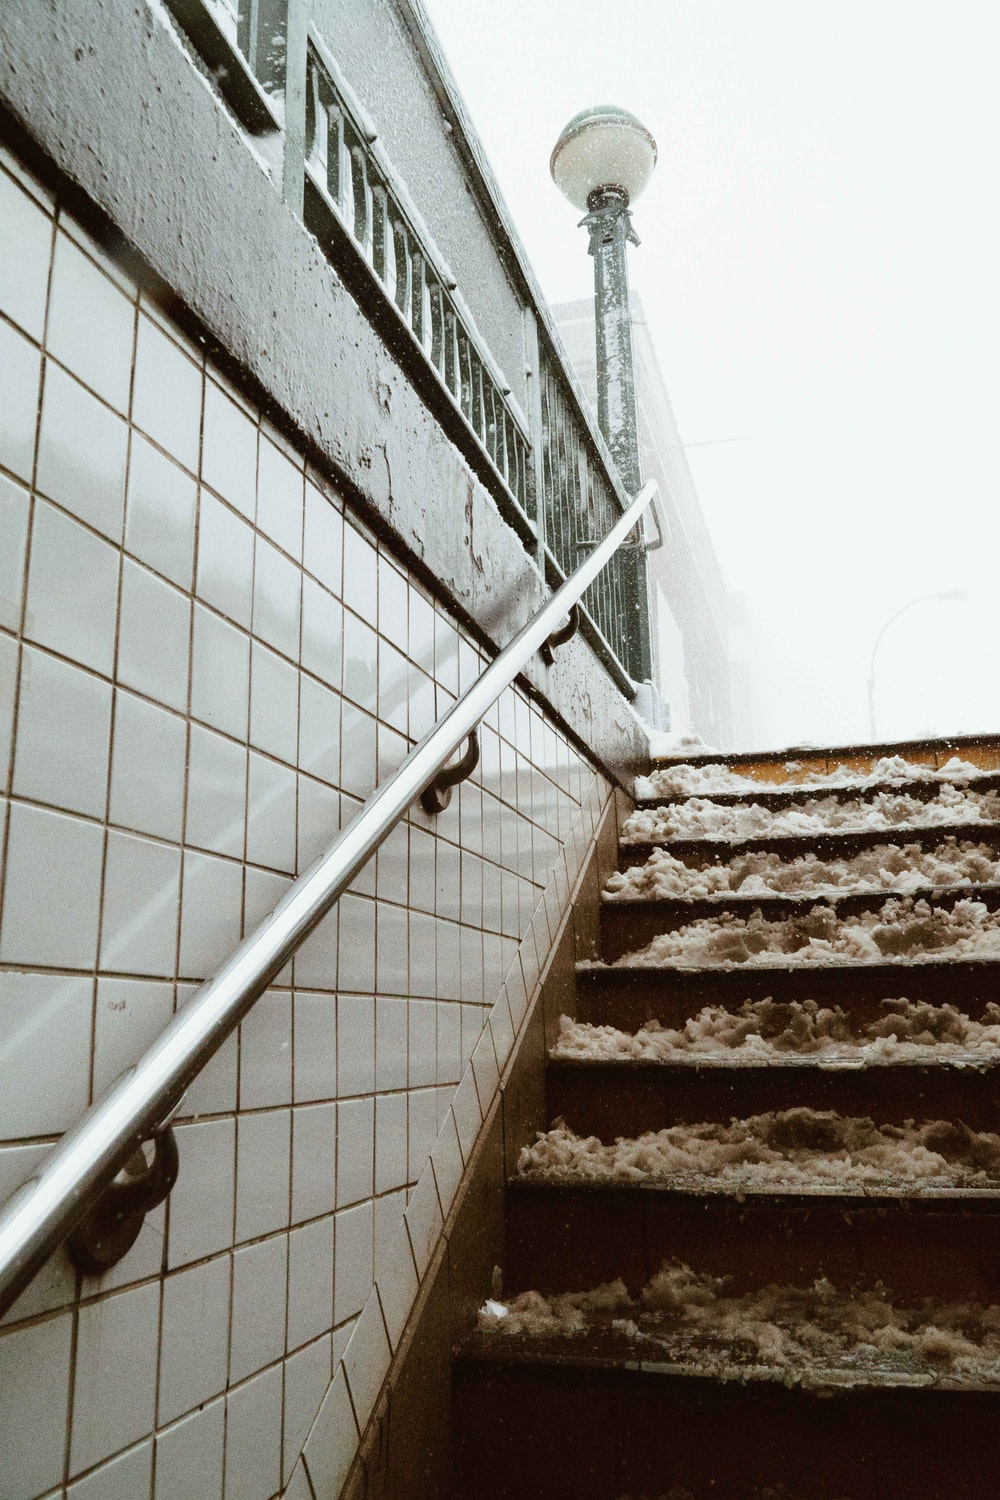 wooden stairs with metal handle